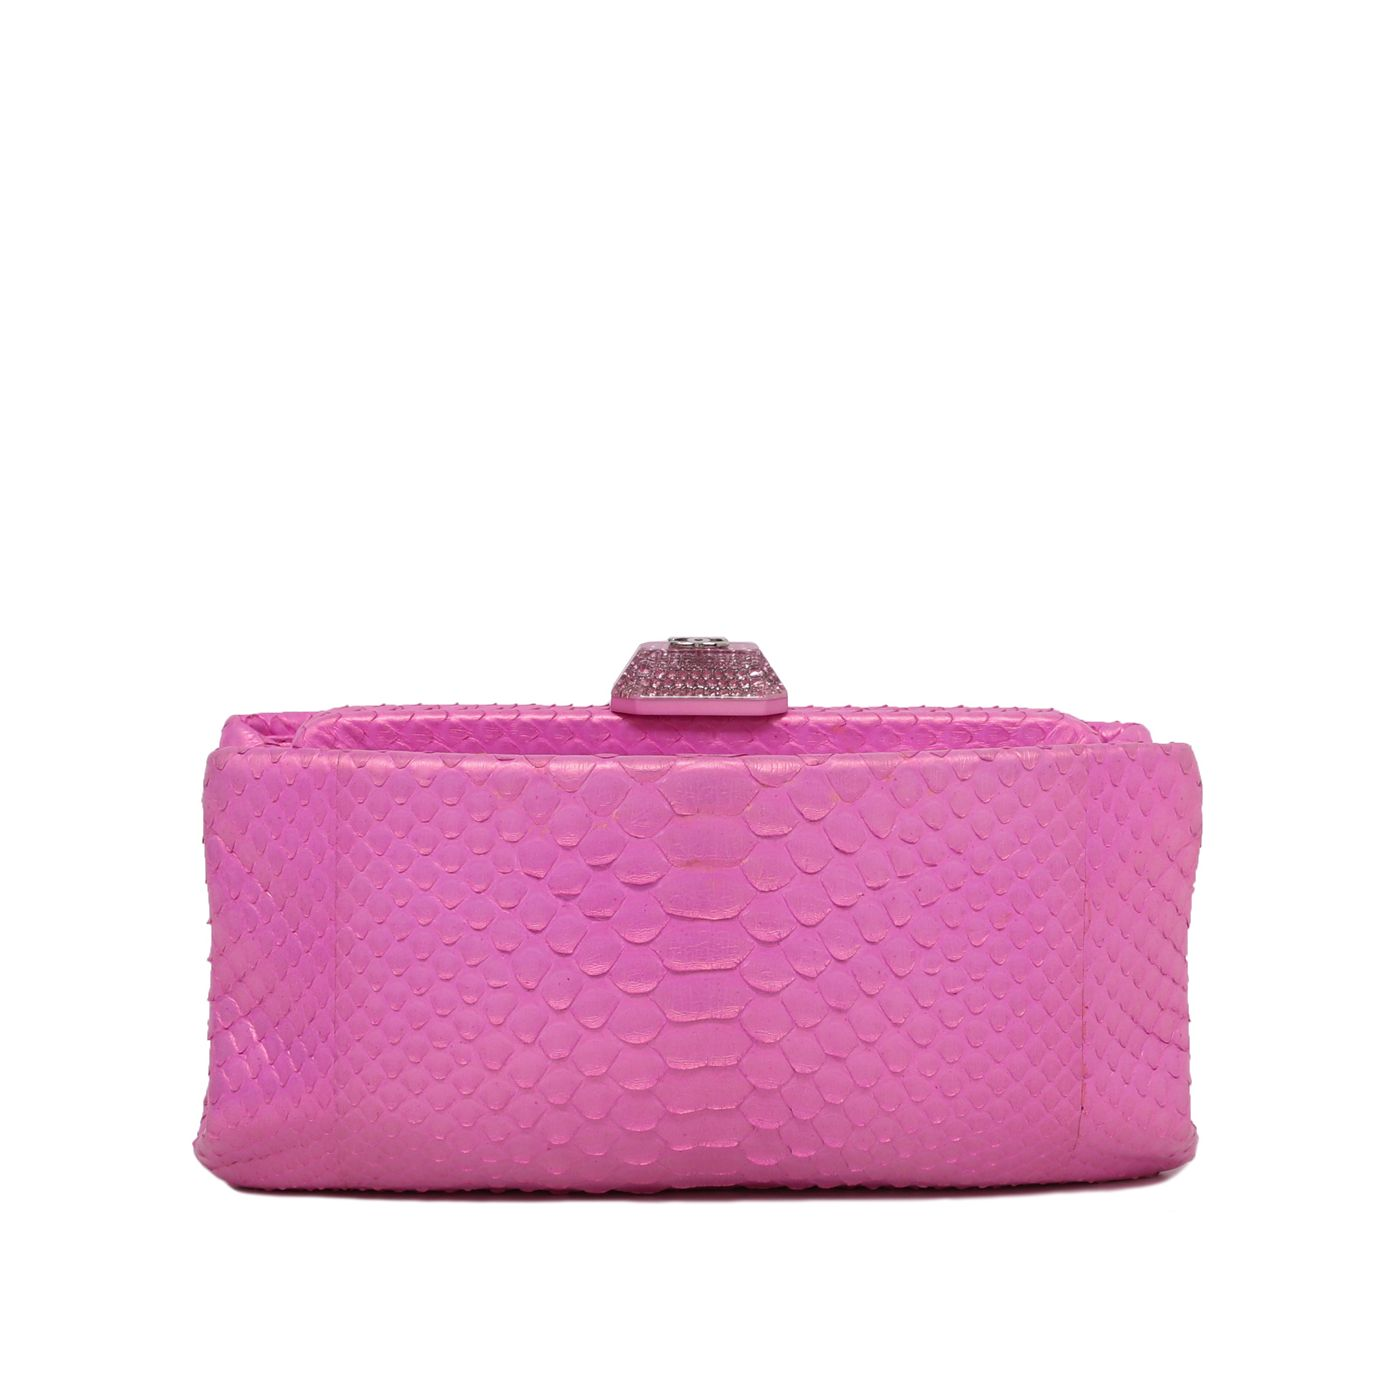 Chanel Pink CC Metallic Python Clutch